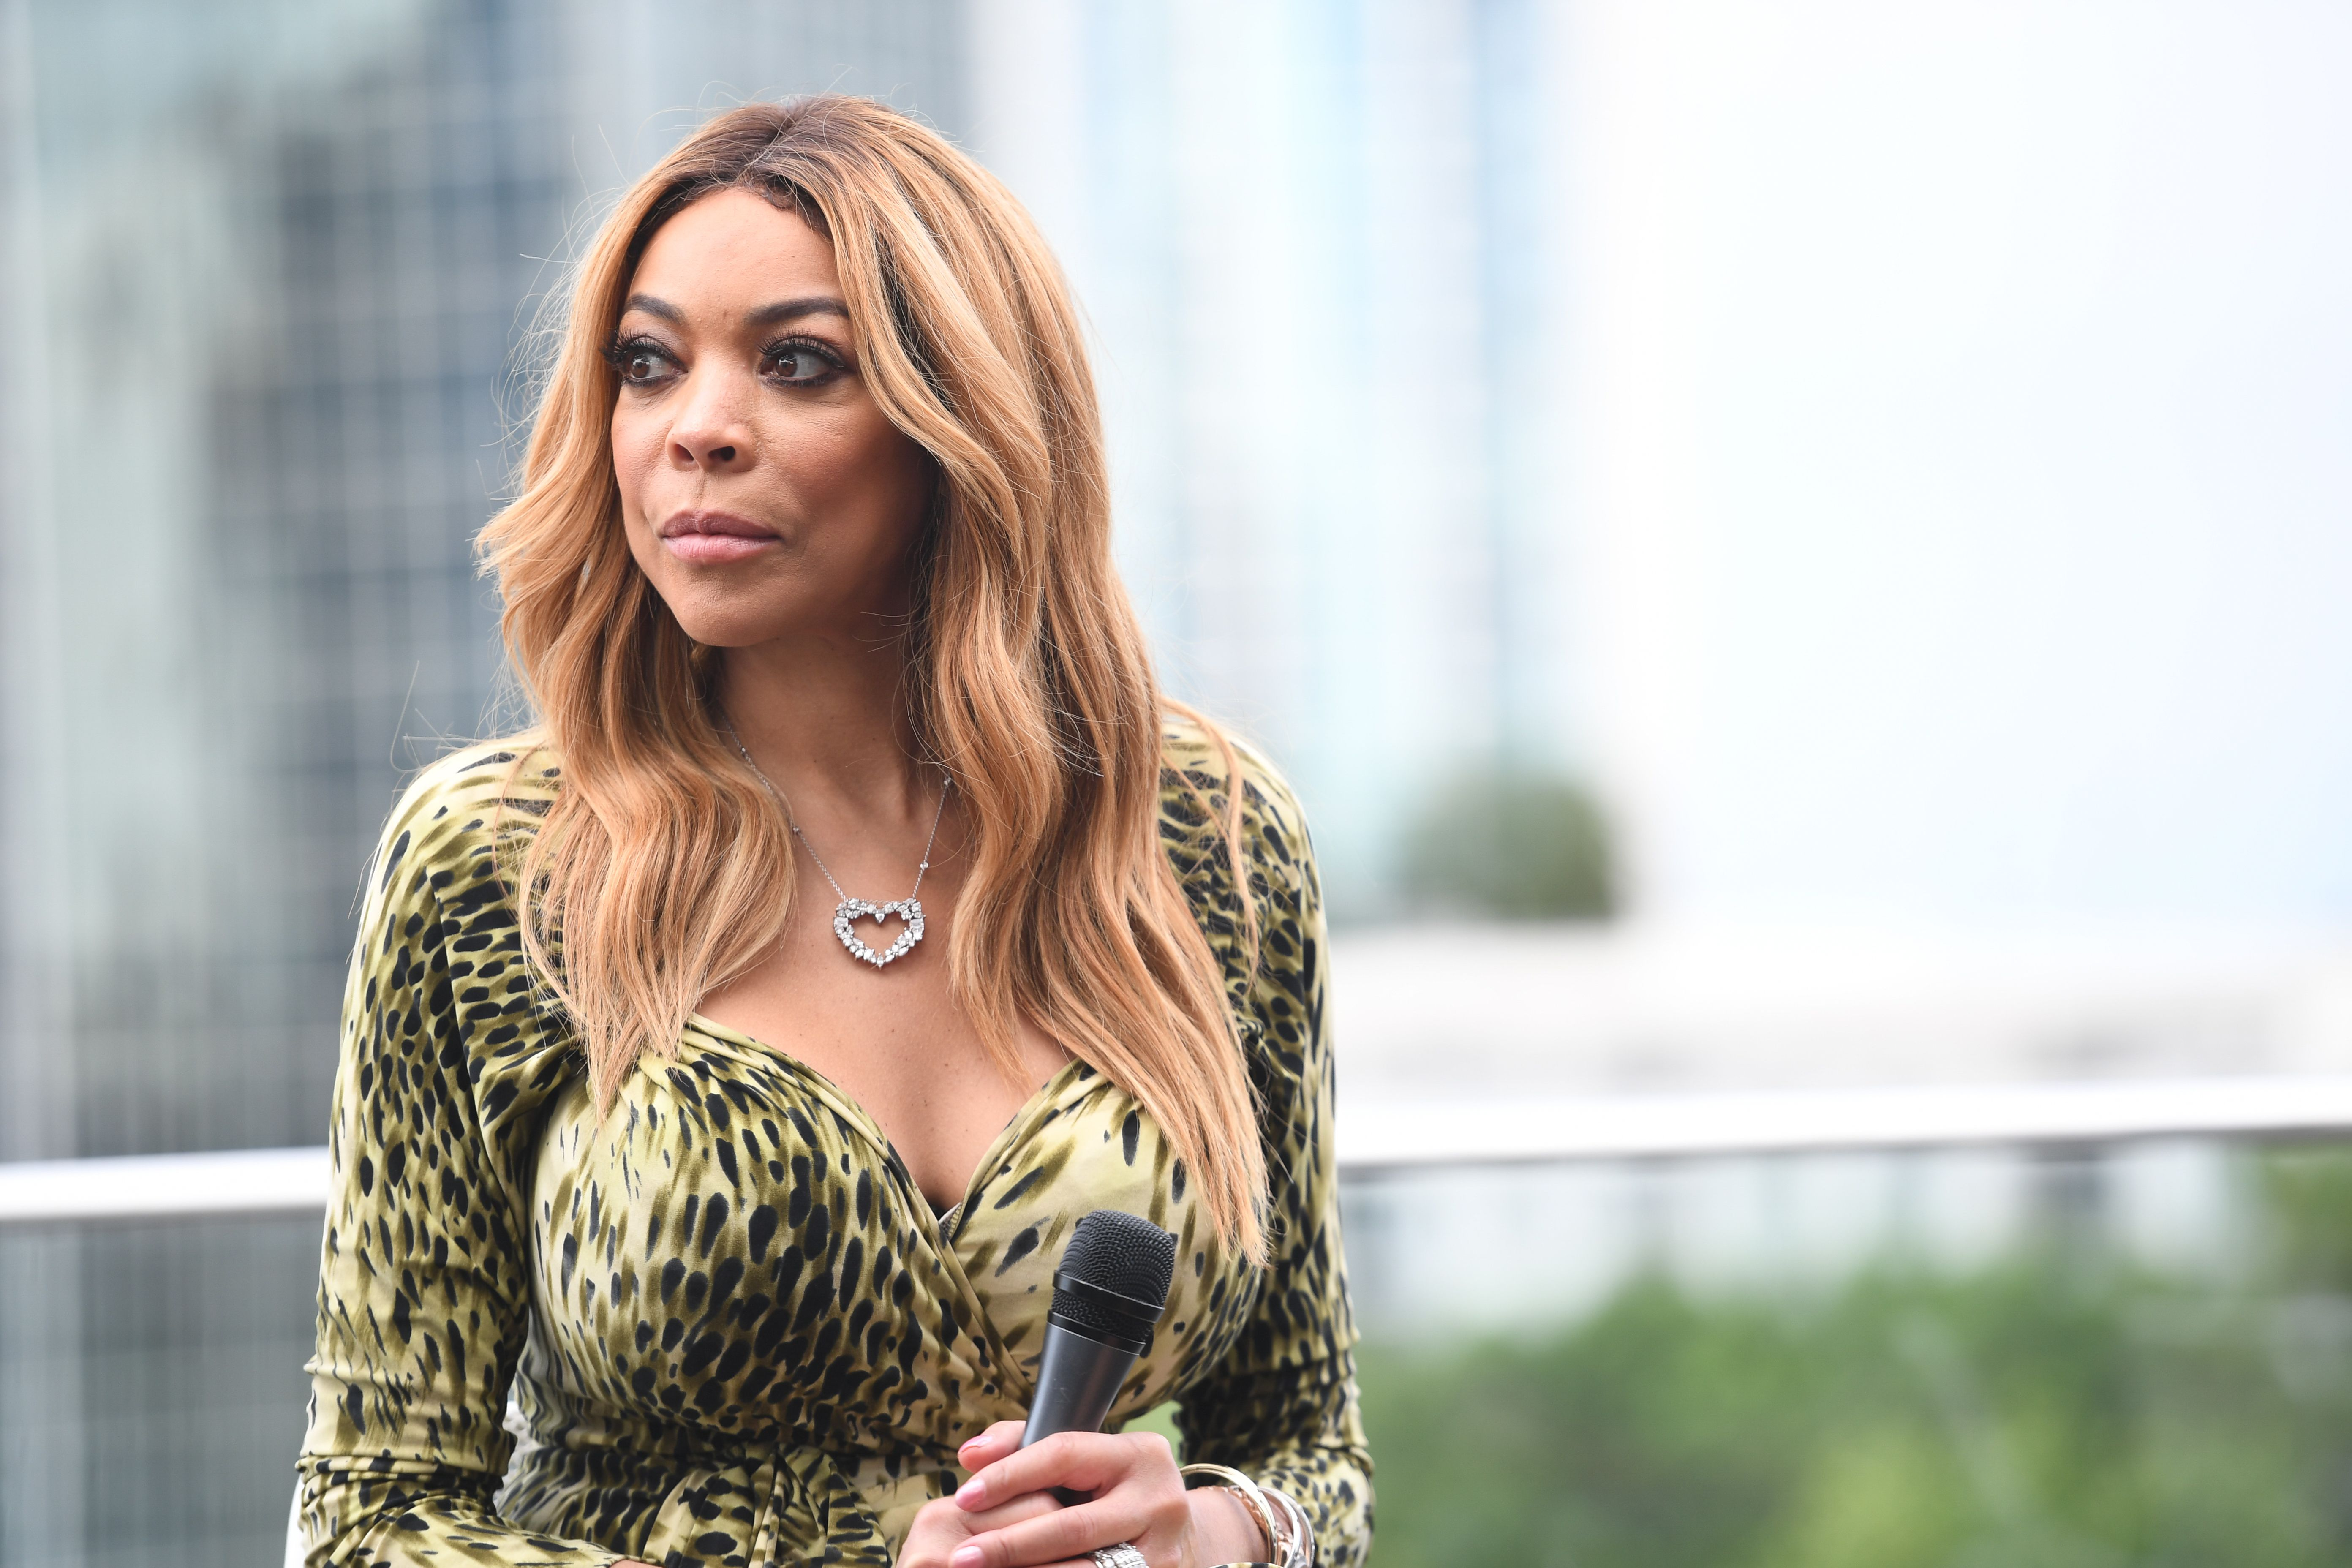 Wendy Williams attends Wendy Digital Event in 2017 in Atlanta, Georgia   Source: Getty Images